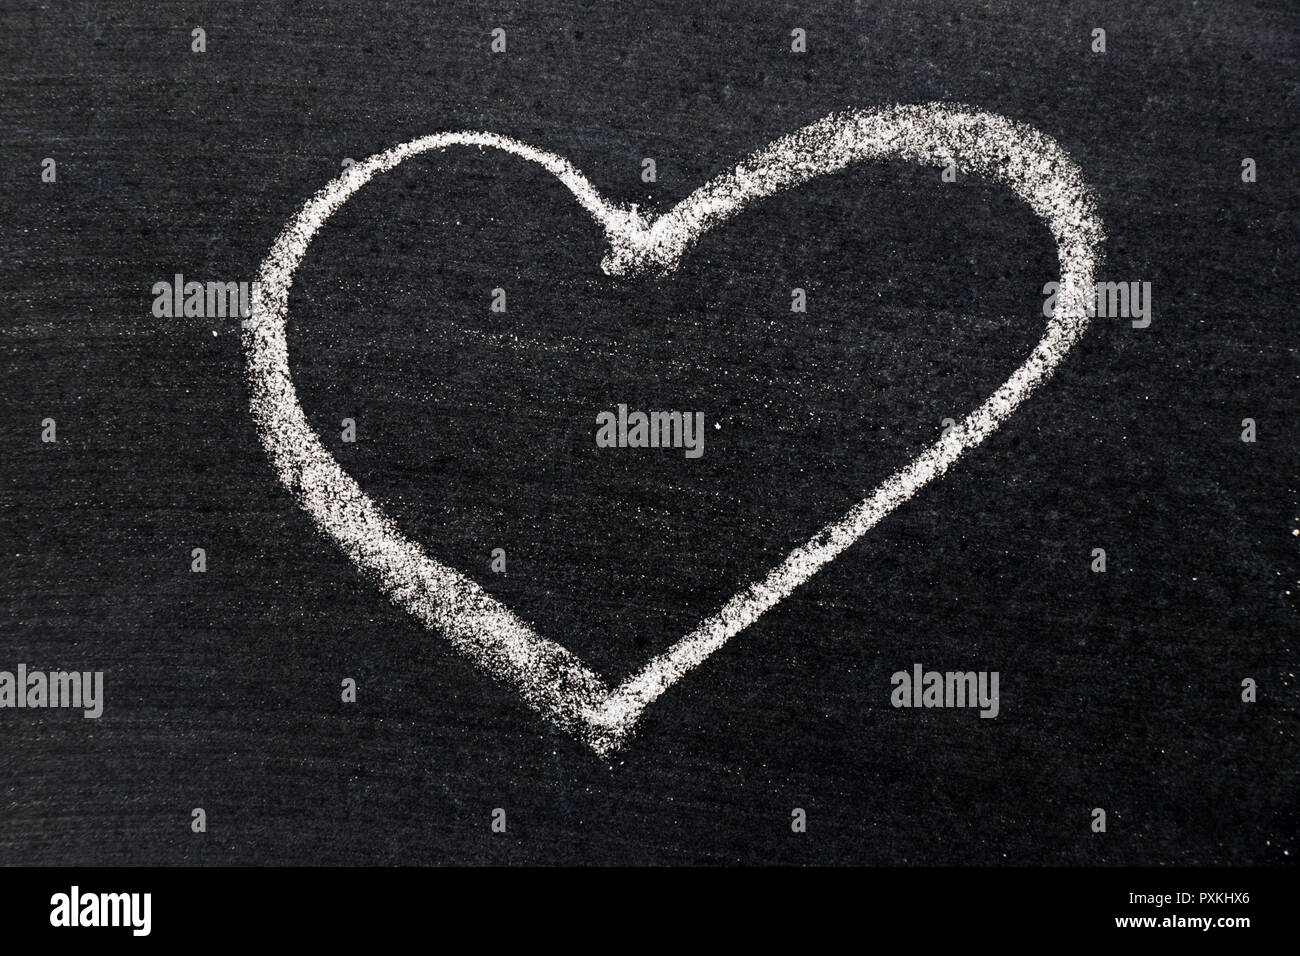 White chalk drawing in heart shape on black board background use for decoration in valentine, love, couple or engagement concept - Stock Image